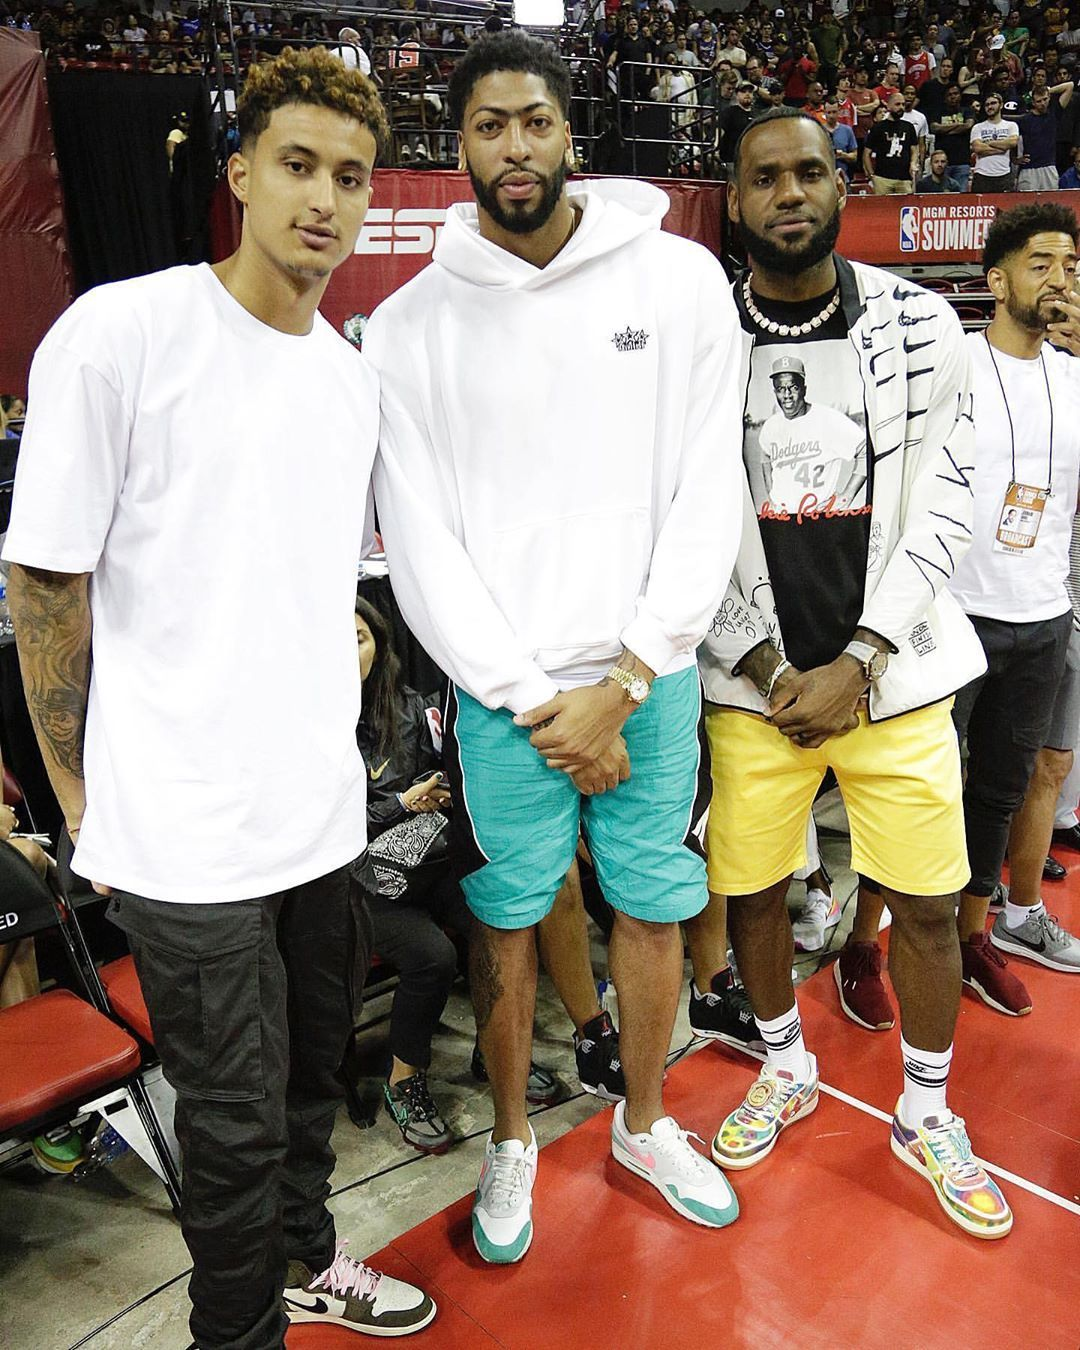 Pin By Terrae Baker On Long Live The Lakers Nba Fashion Kyle